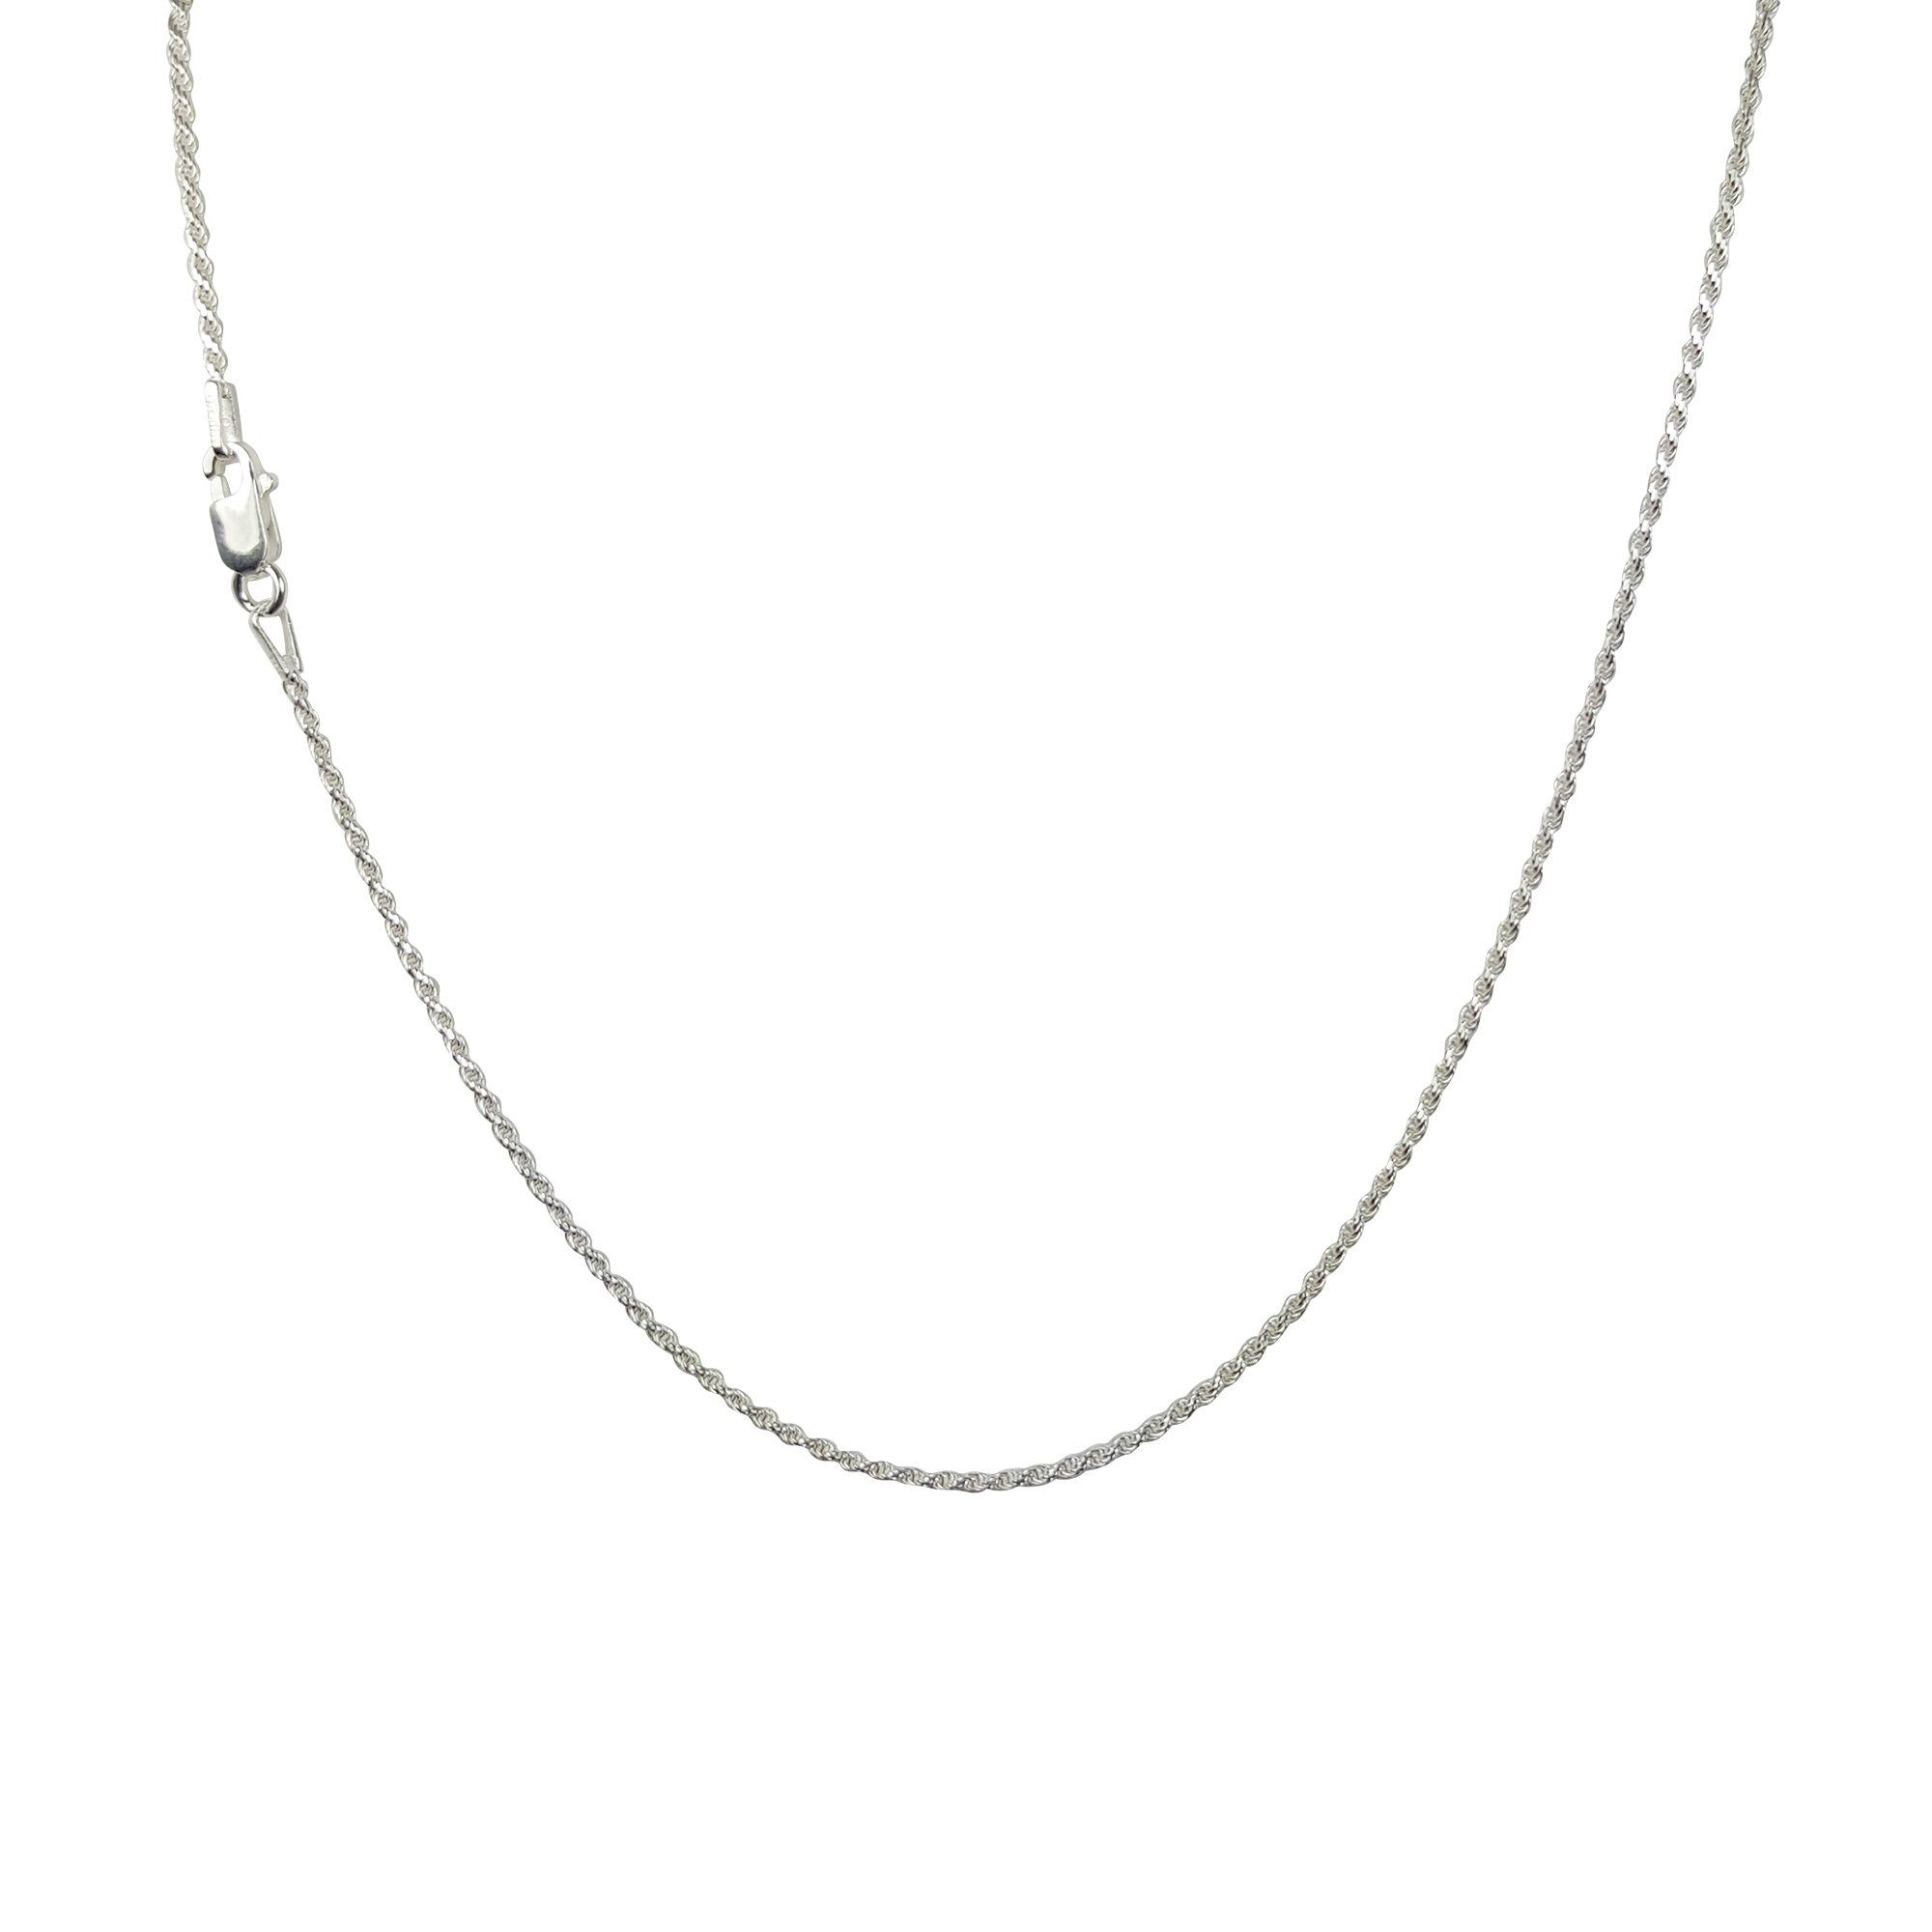 925 Sterling Silver 2MM Rope Chain - Nickel Free Italian Crafted Necklace for Women 100% Moneyback Guarantee - Excellent Quality Thin Lightweight Strong - Best on Amazon - Lobster Claw Clasp 16 inch